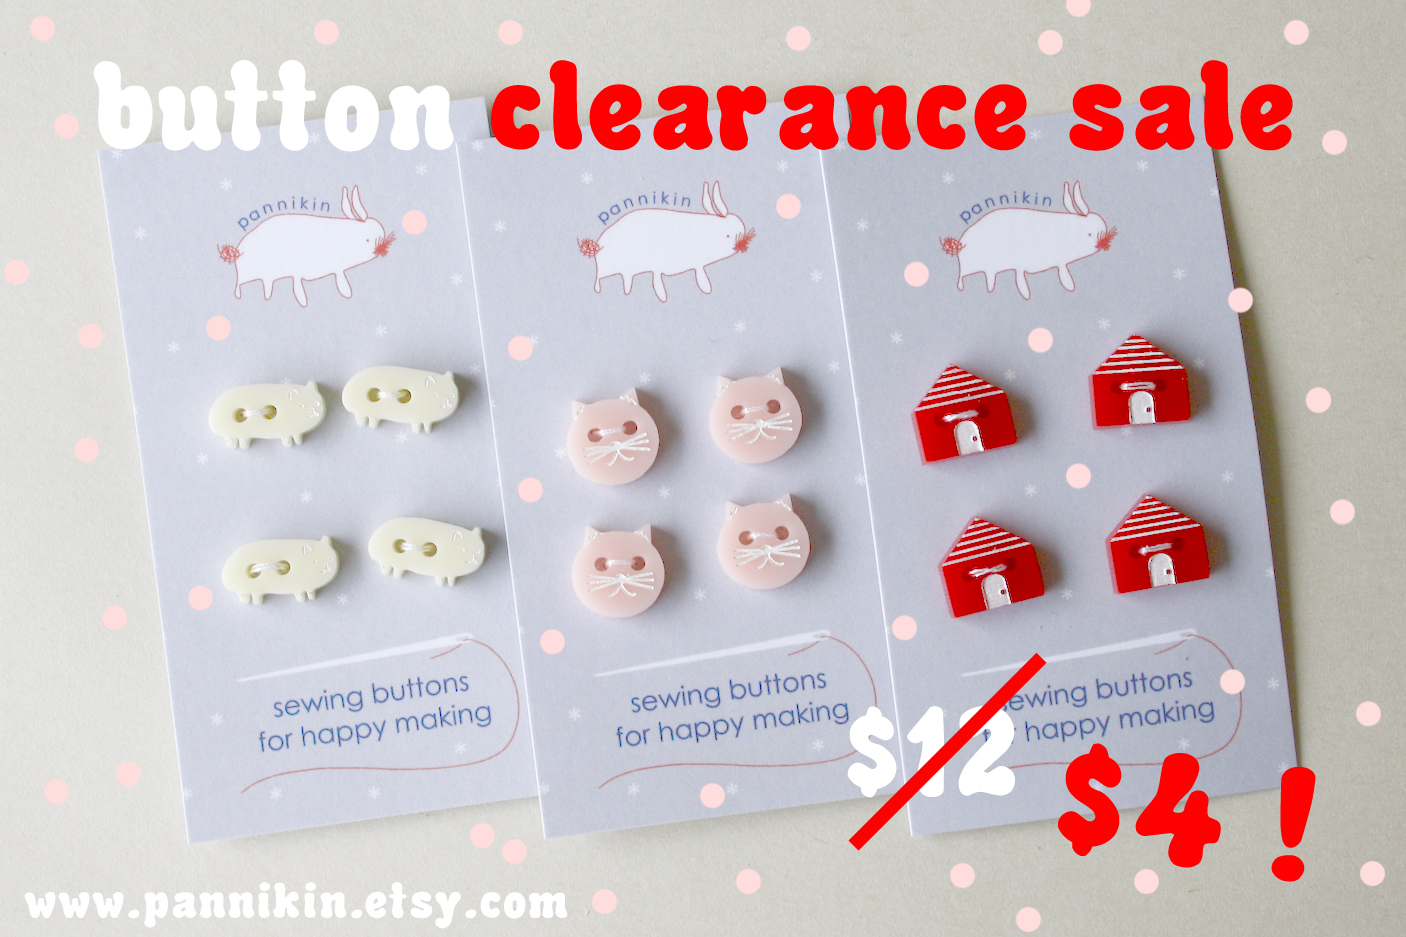 Pannikin button clearance sale